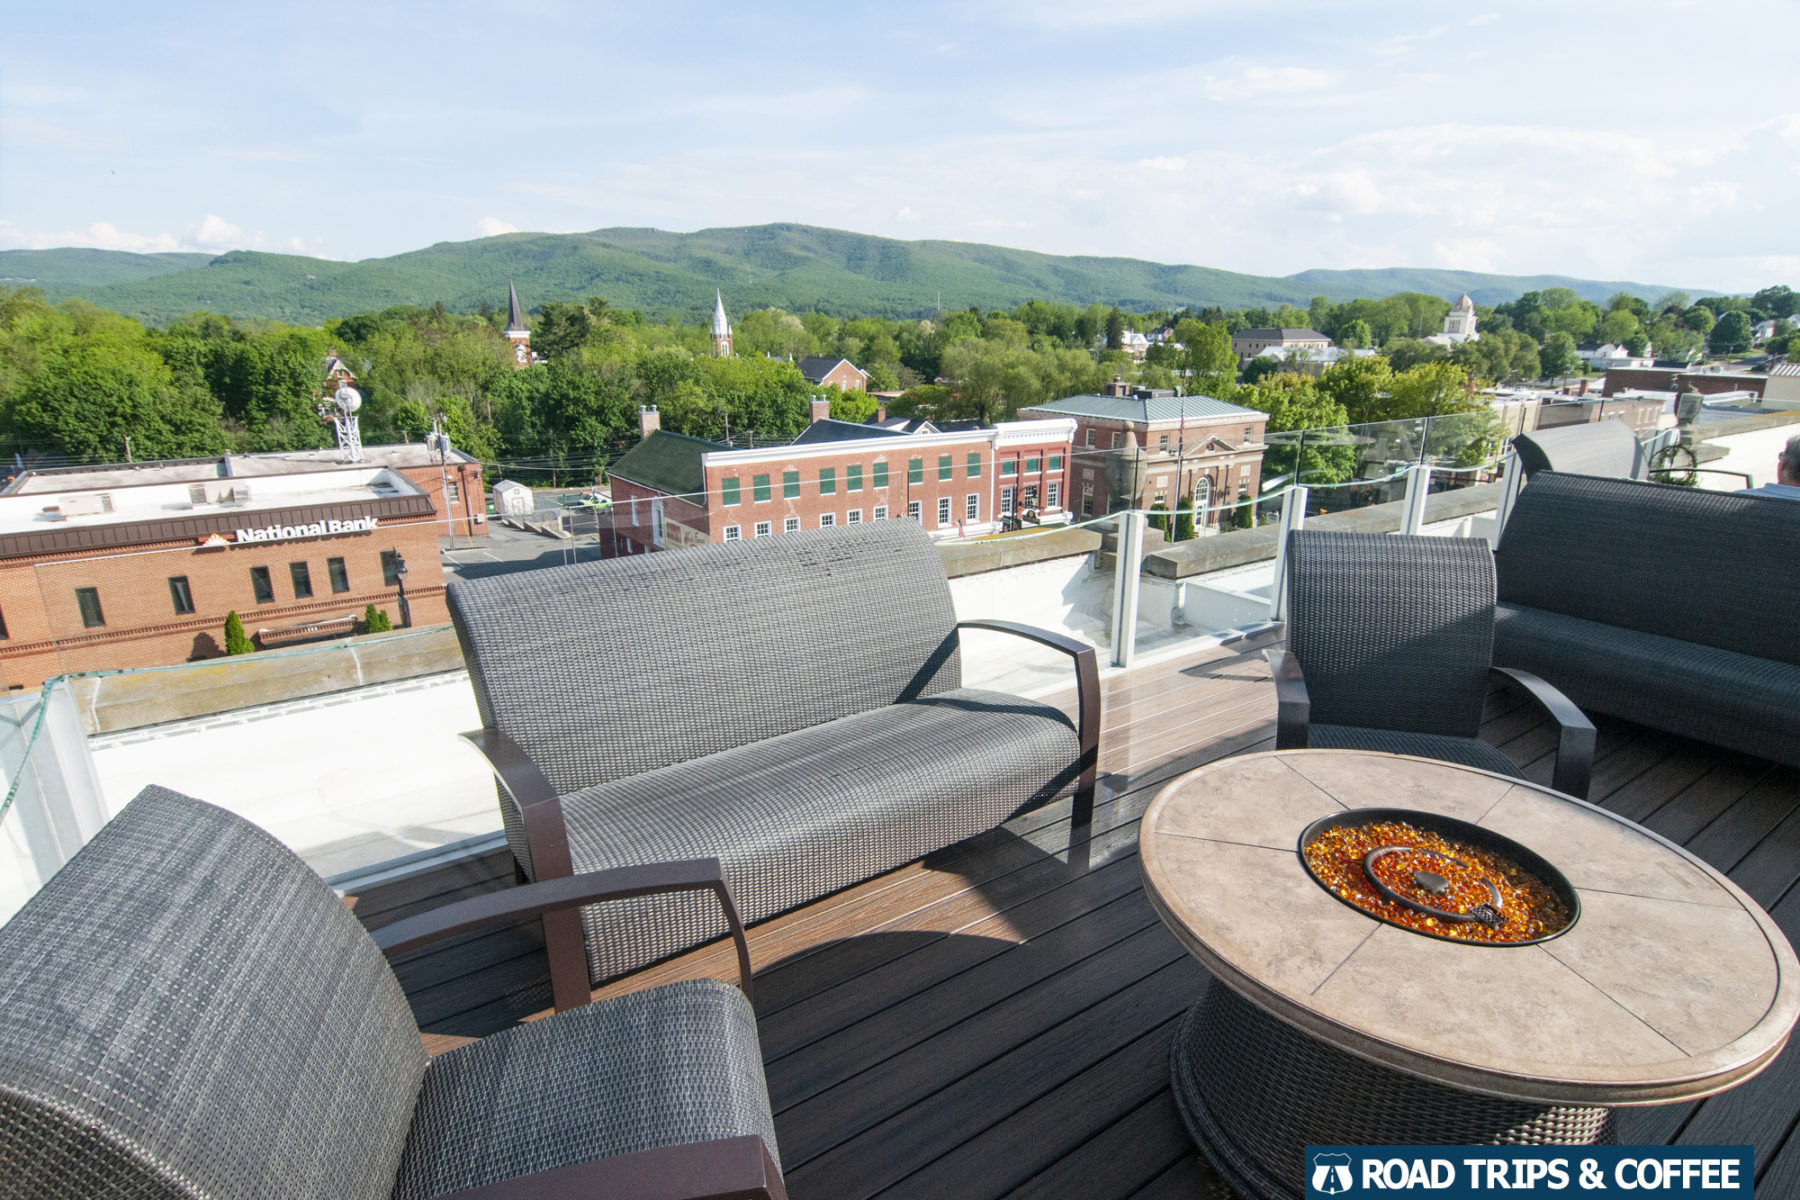 Wicker furniture and a fire pit table on the rooftop terrace The Perch at the Bolling Wilson Hotel in Wytheville, Virginia